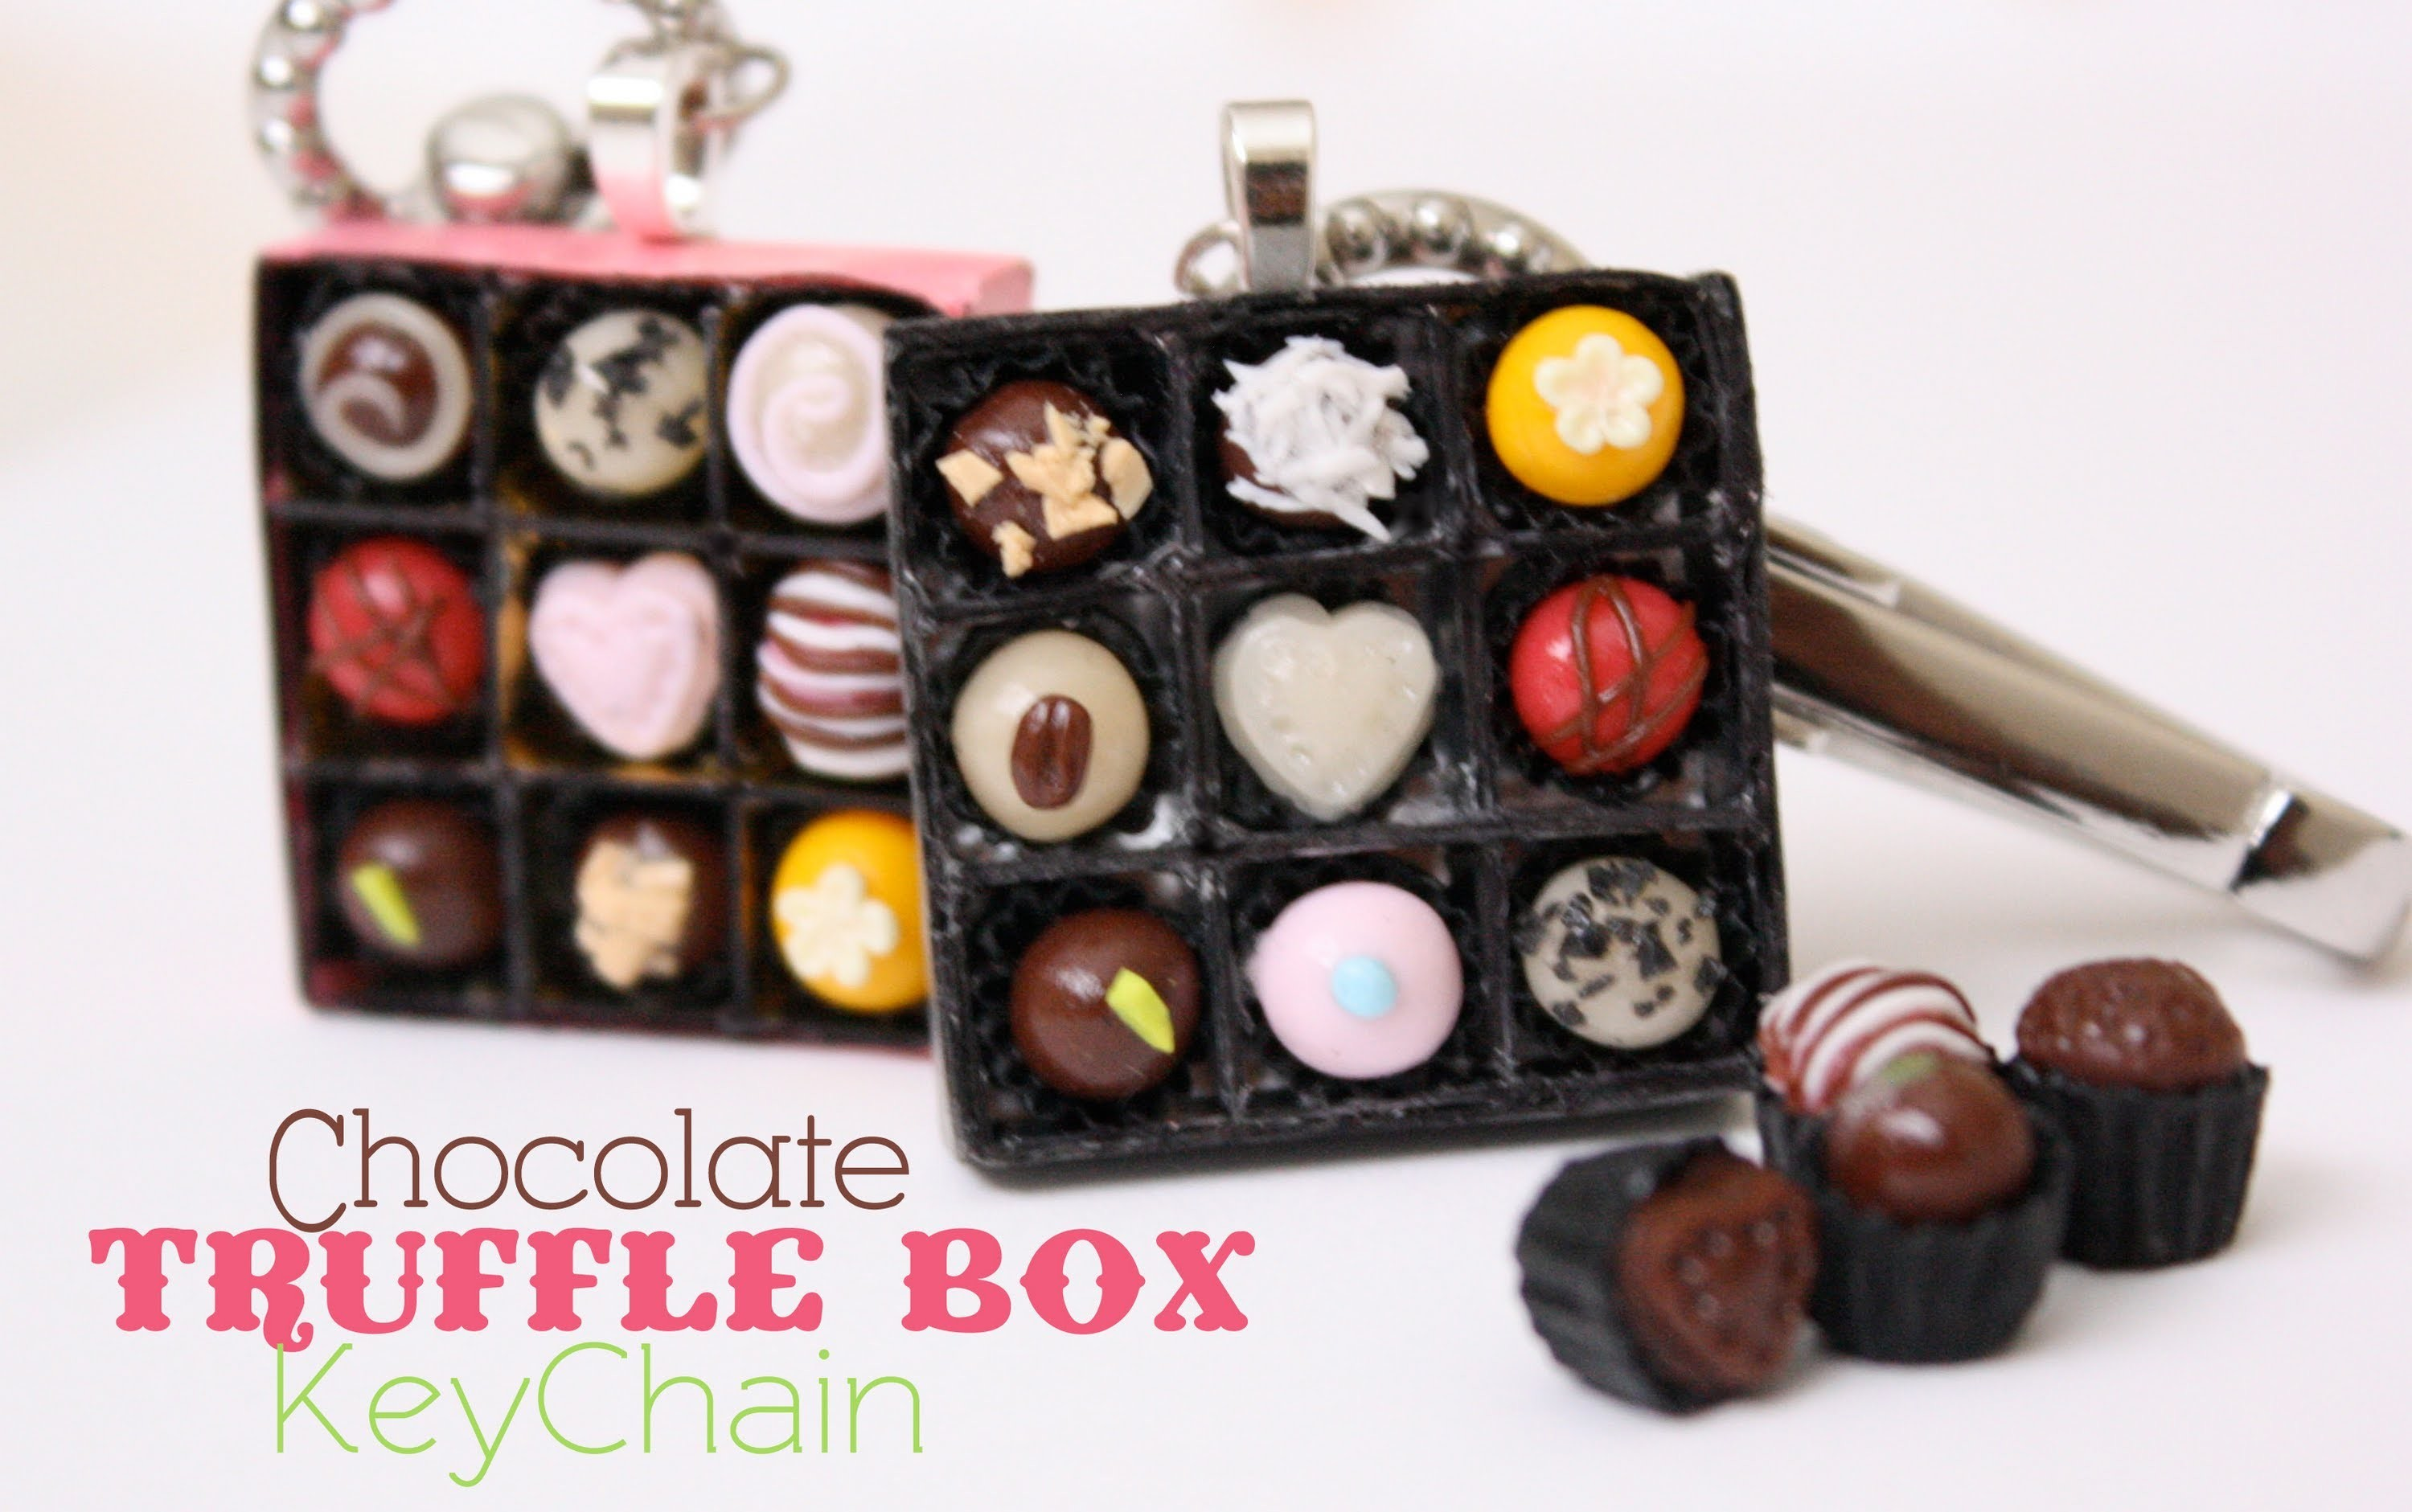 Chocolate Truffle Box - KeyChain - How To Make Polymer Clay Candy